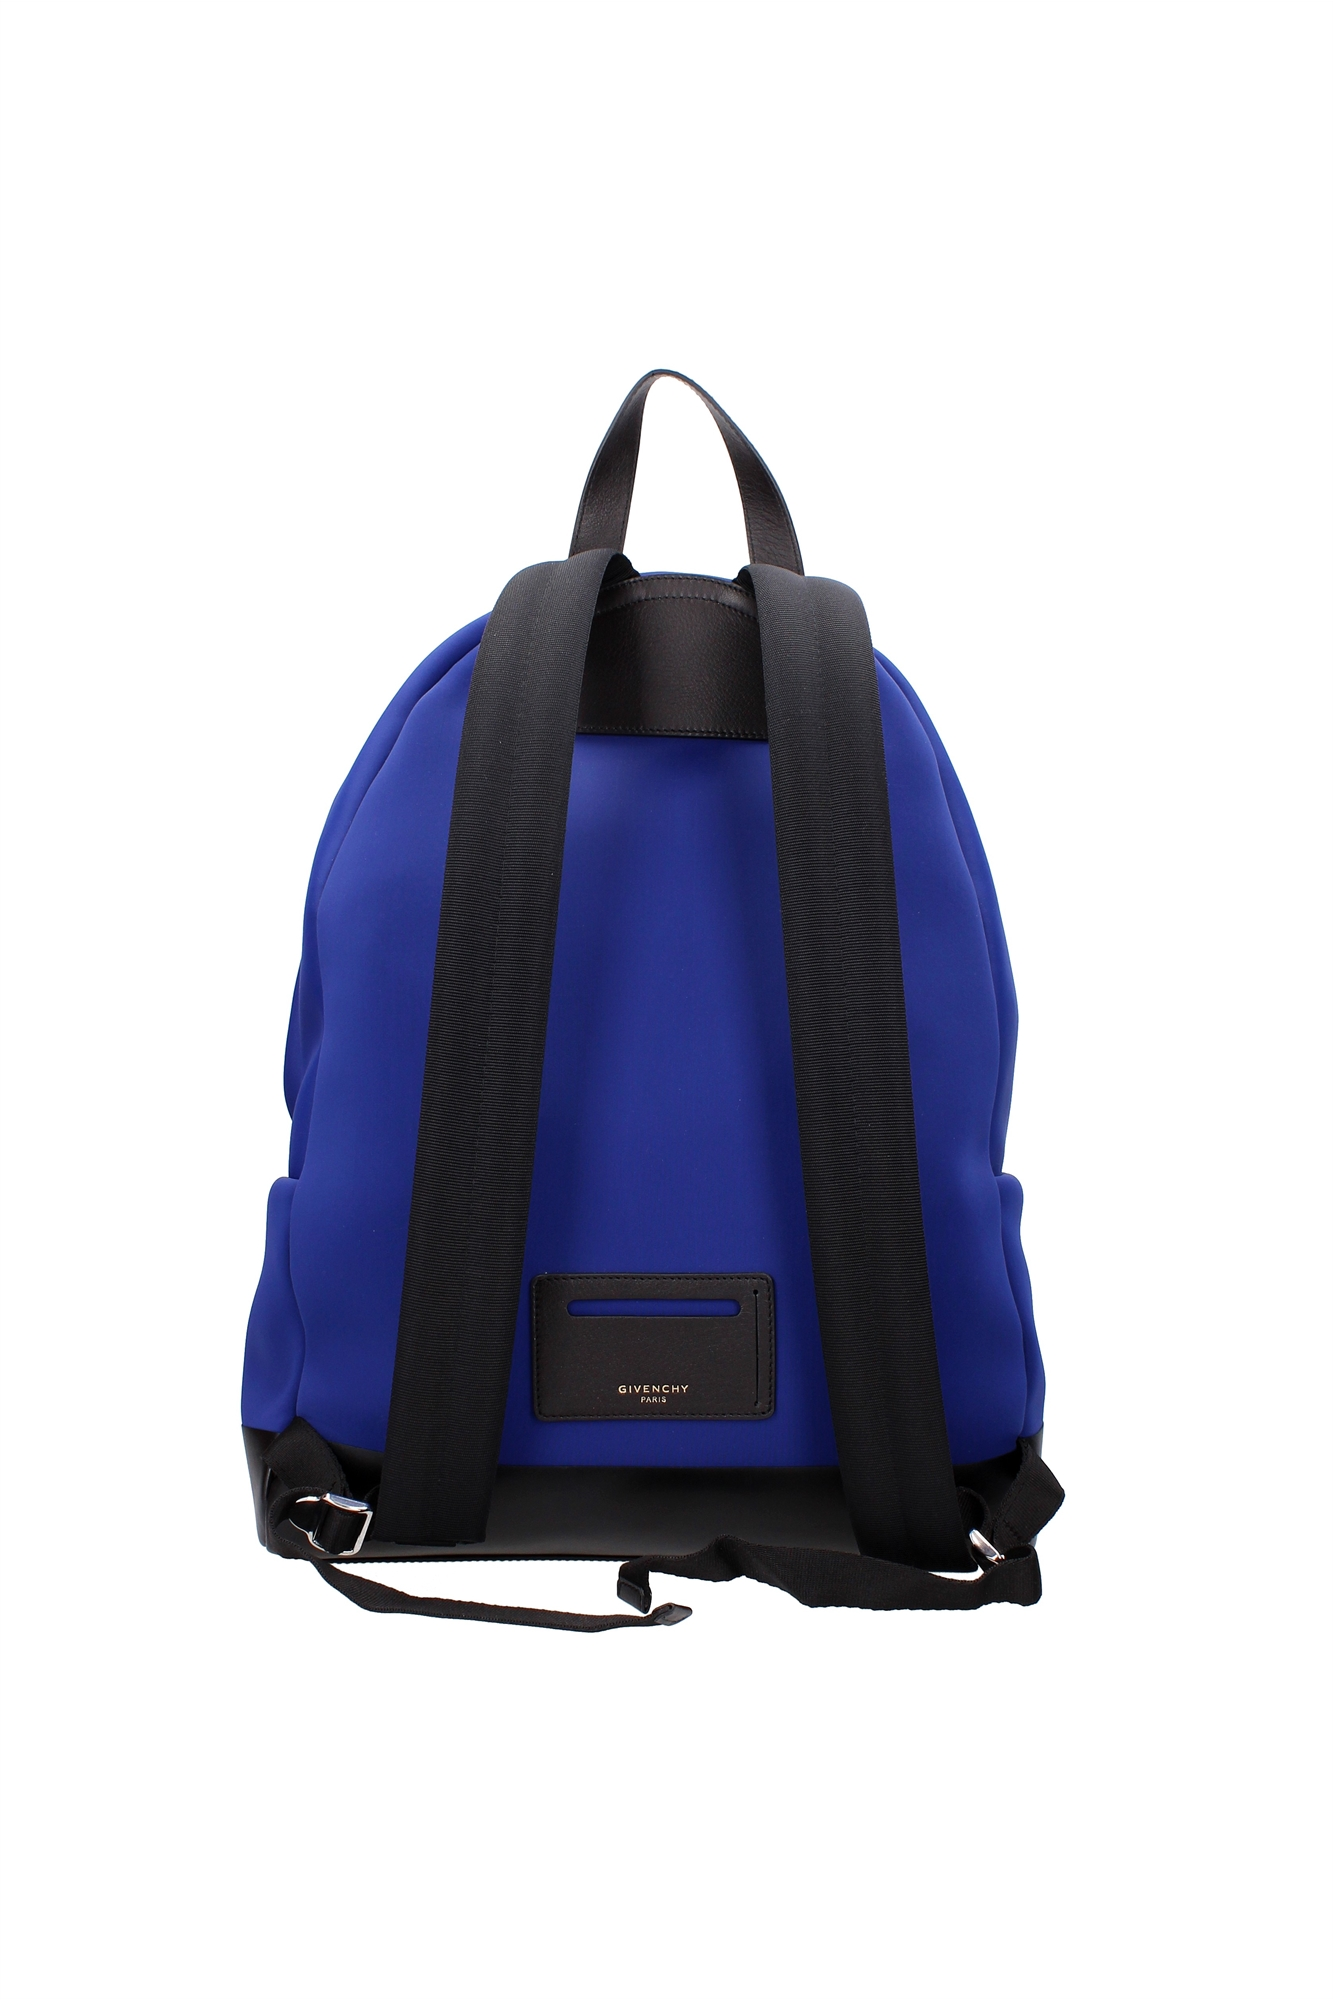 tasche rucksack givenchy herren stoff blau bj05761422400 ebay. Black Bedroom Furniture Sets. Home Design Ideas